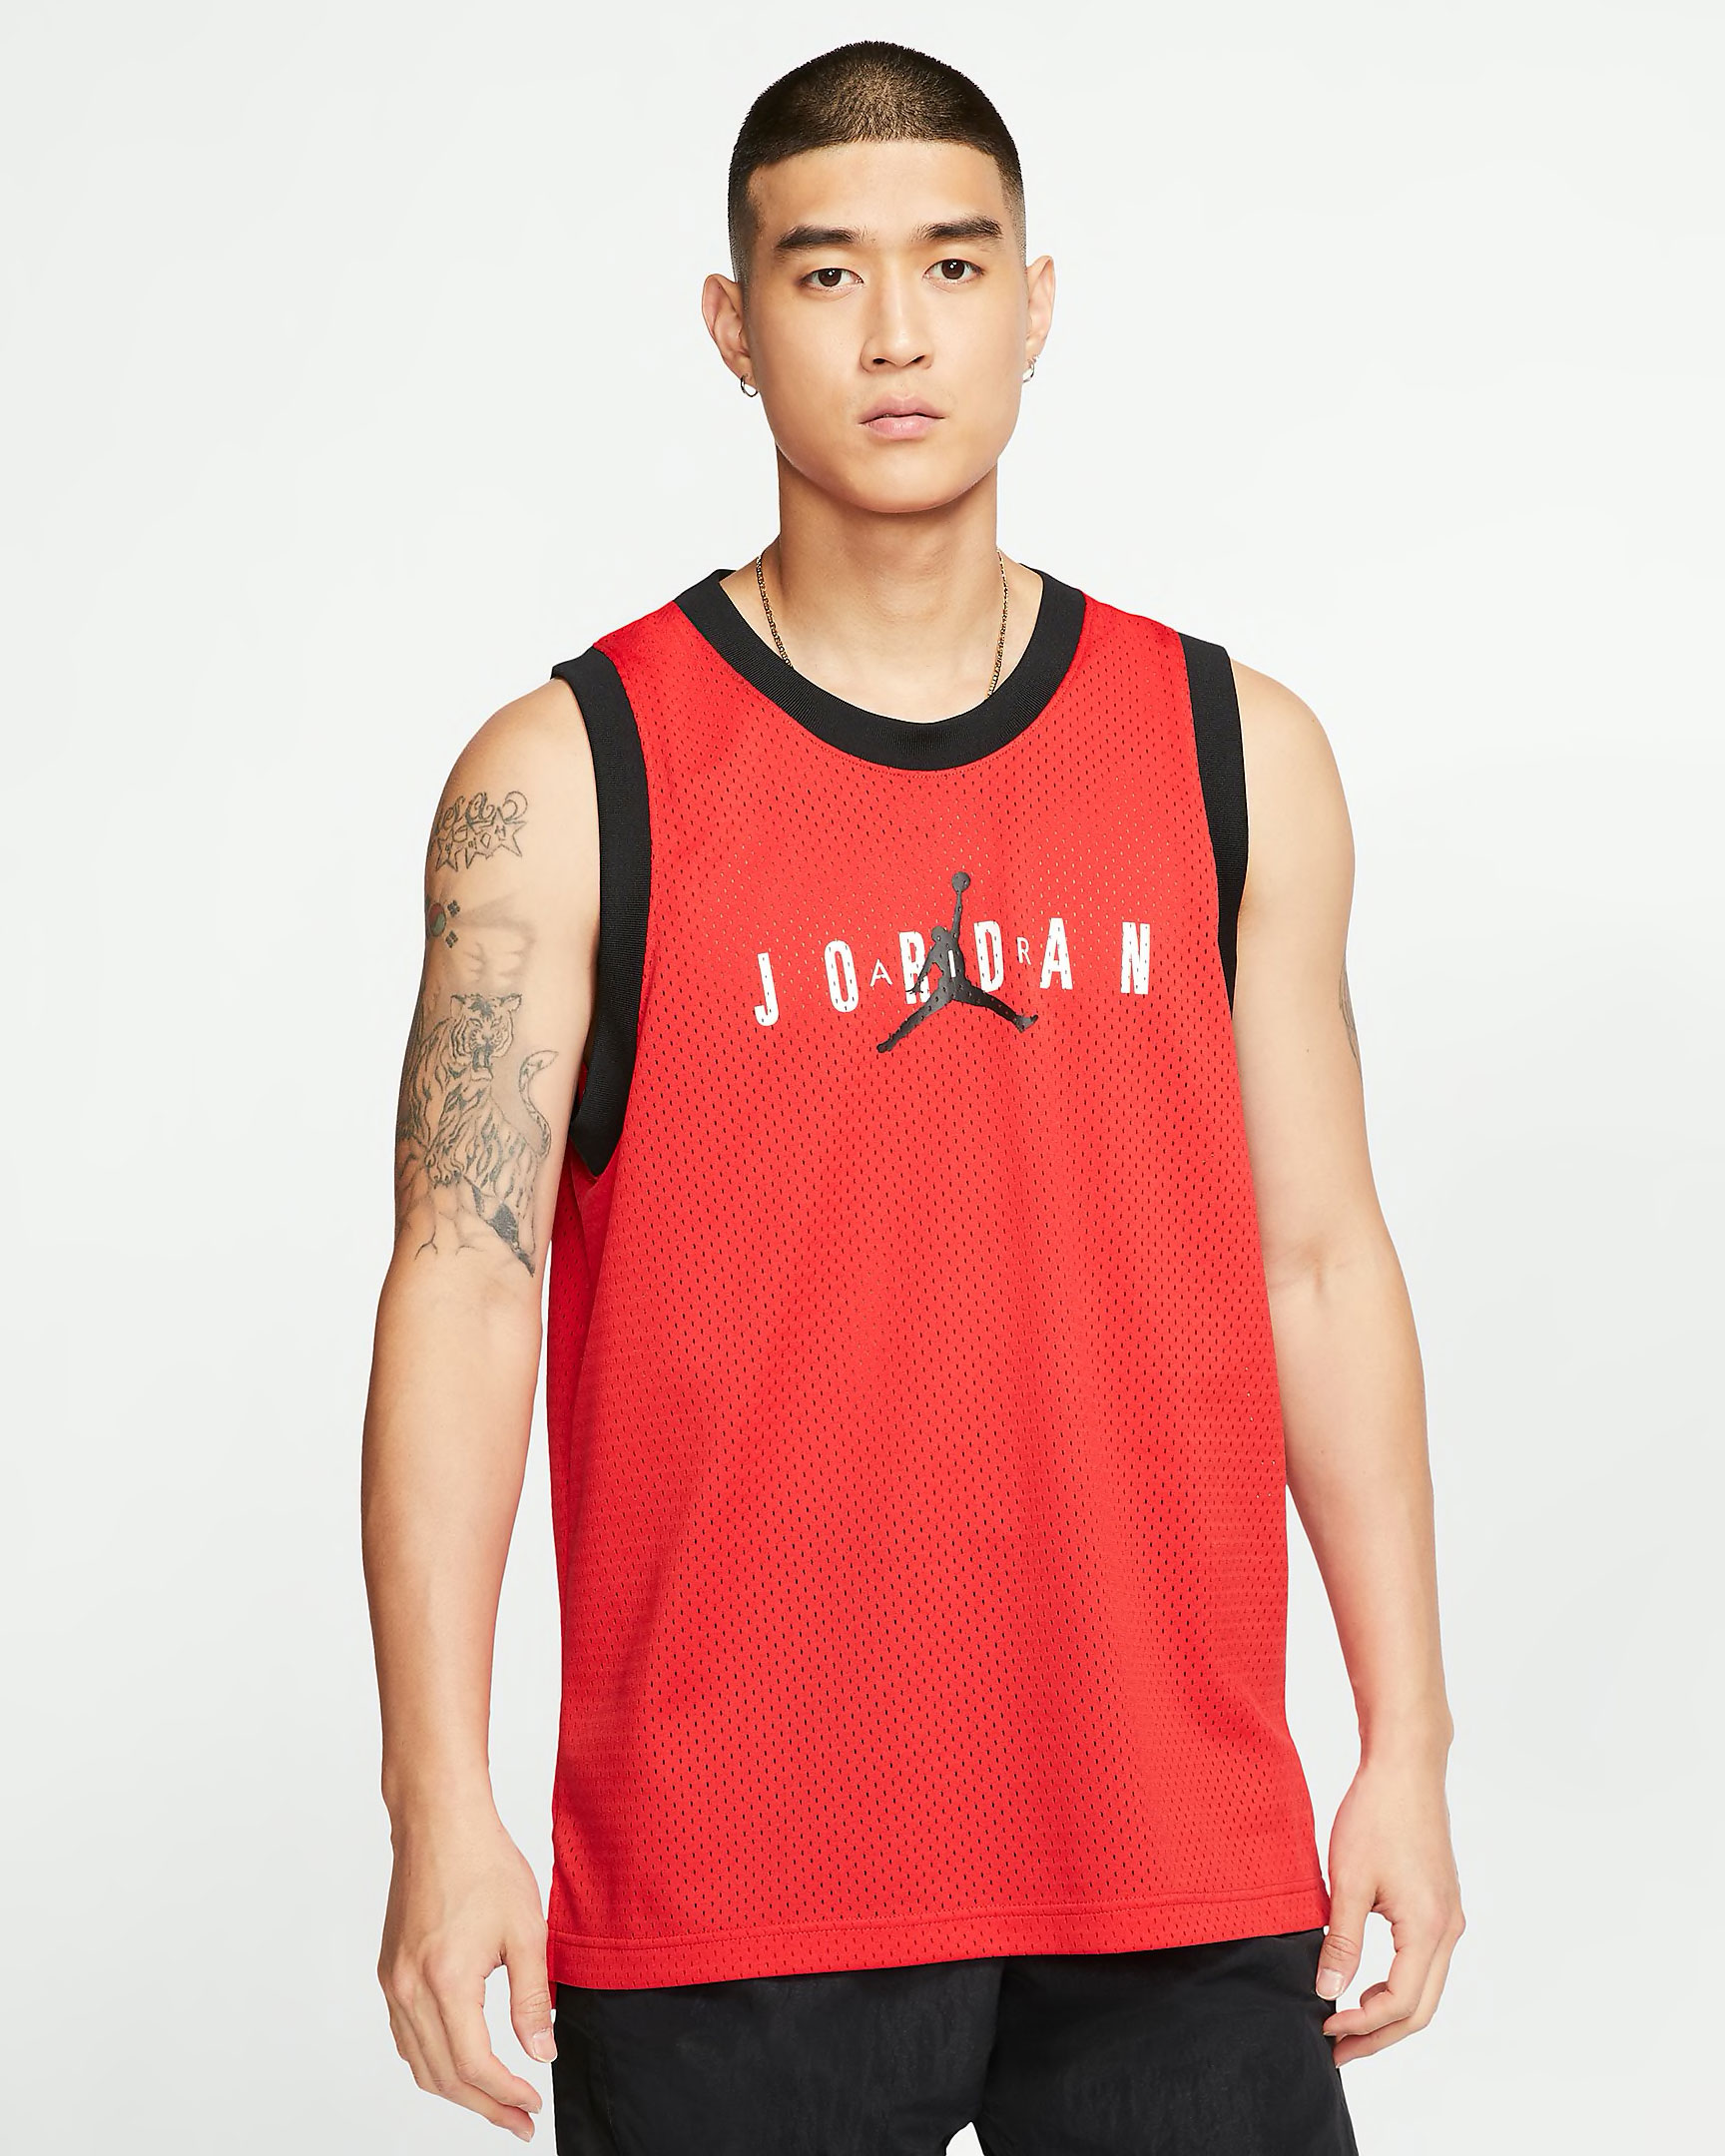 jordan-sport-dna-tank-top-red-black-1